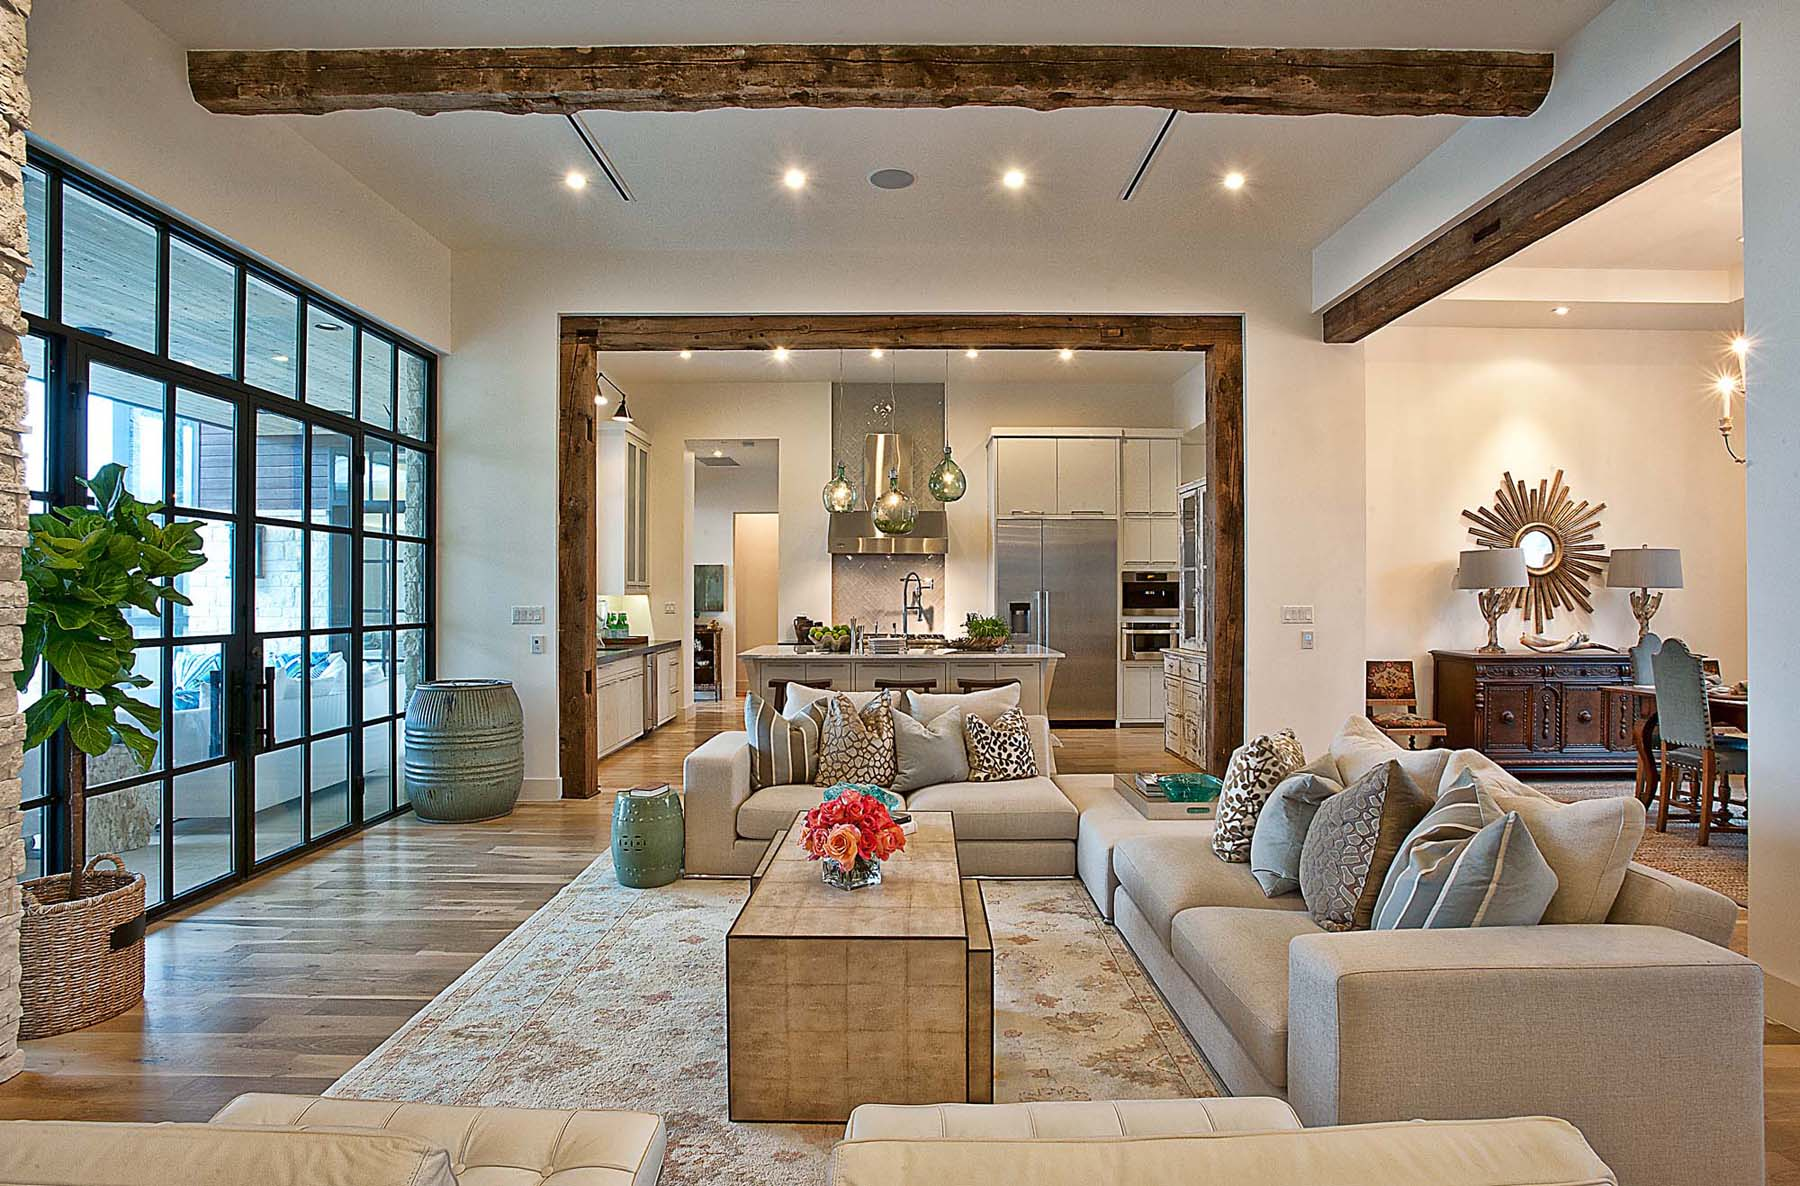 A Contemporary Home With Rustic Elements Connects To Its ... on Interior Modern House  id=79393